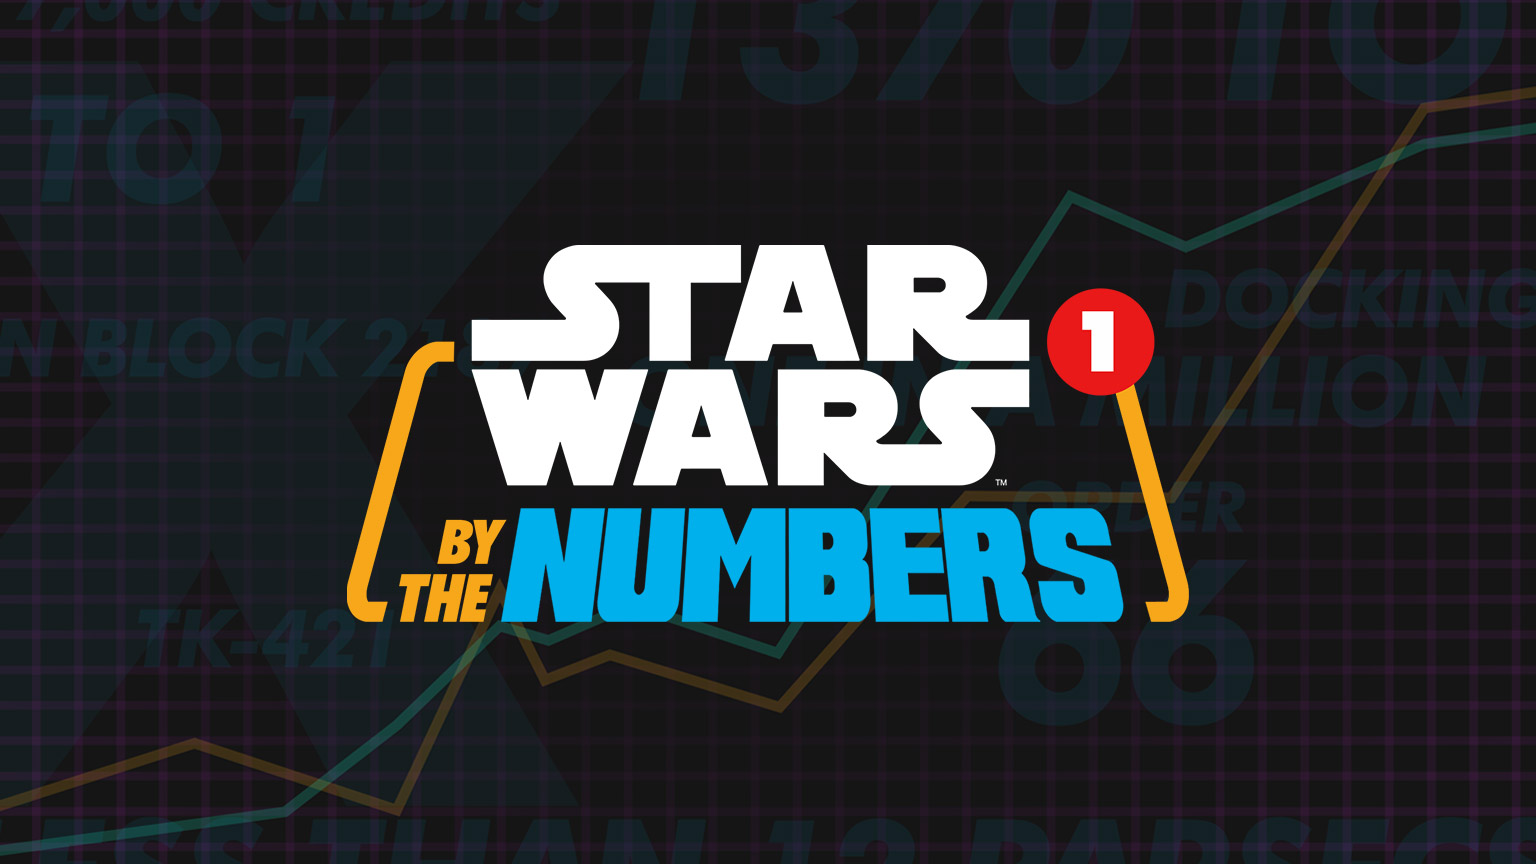 The logo for Star Wars By the Numbers.